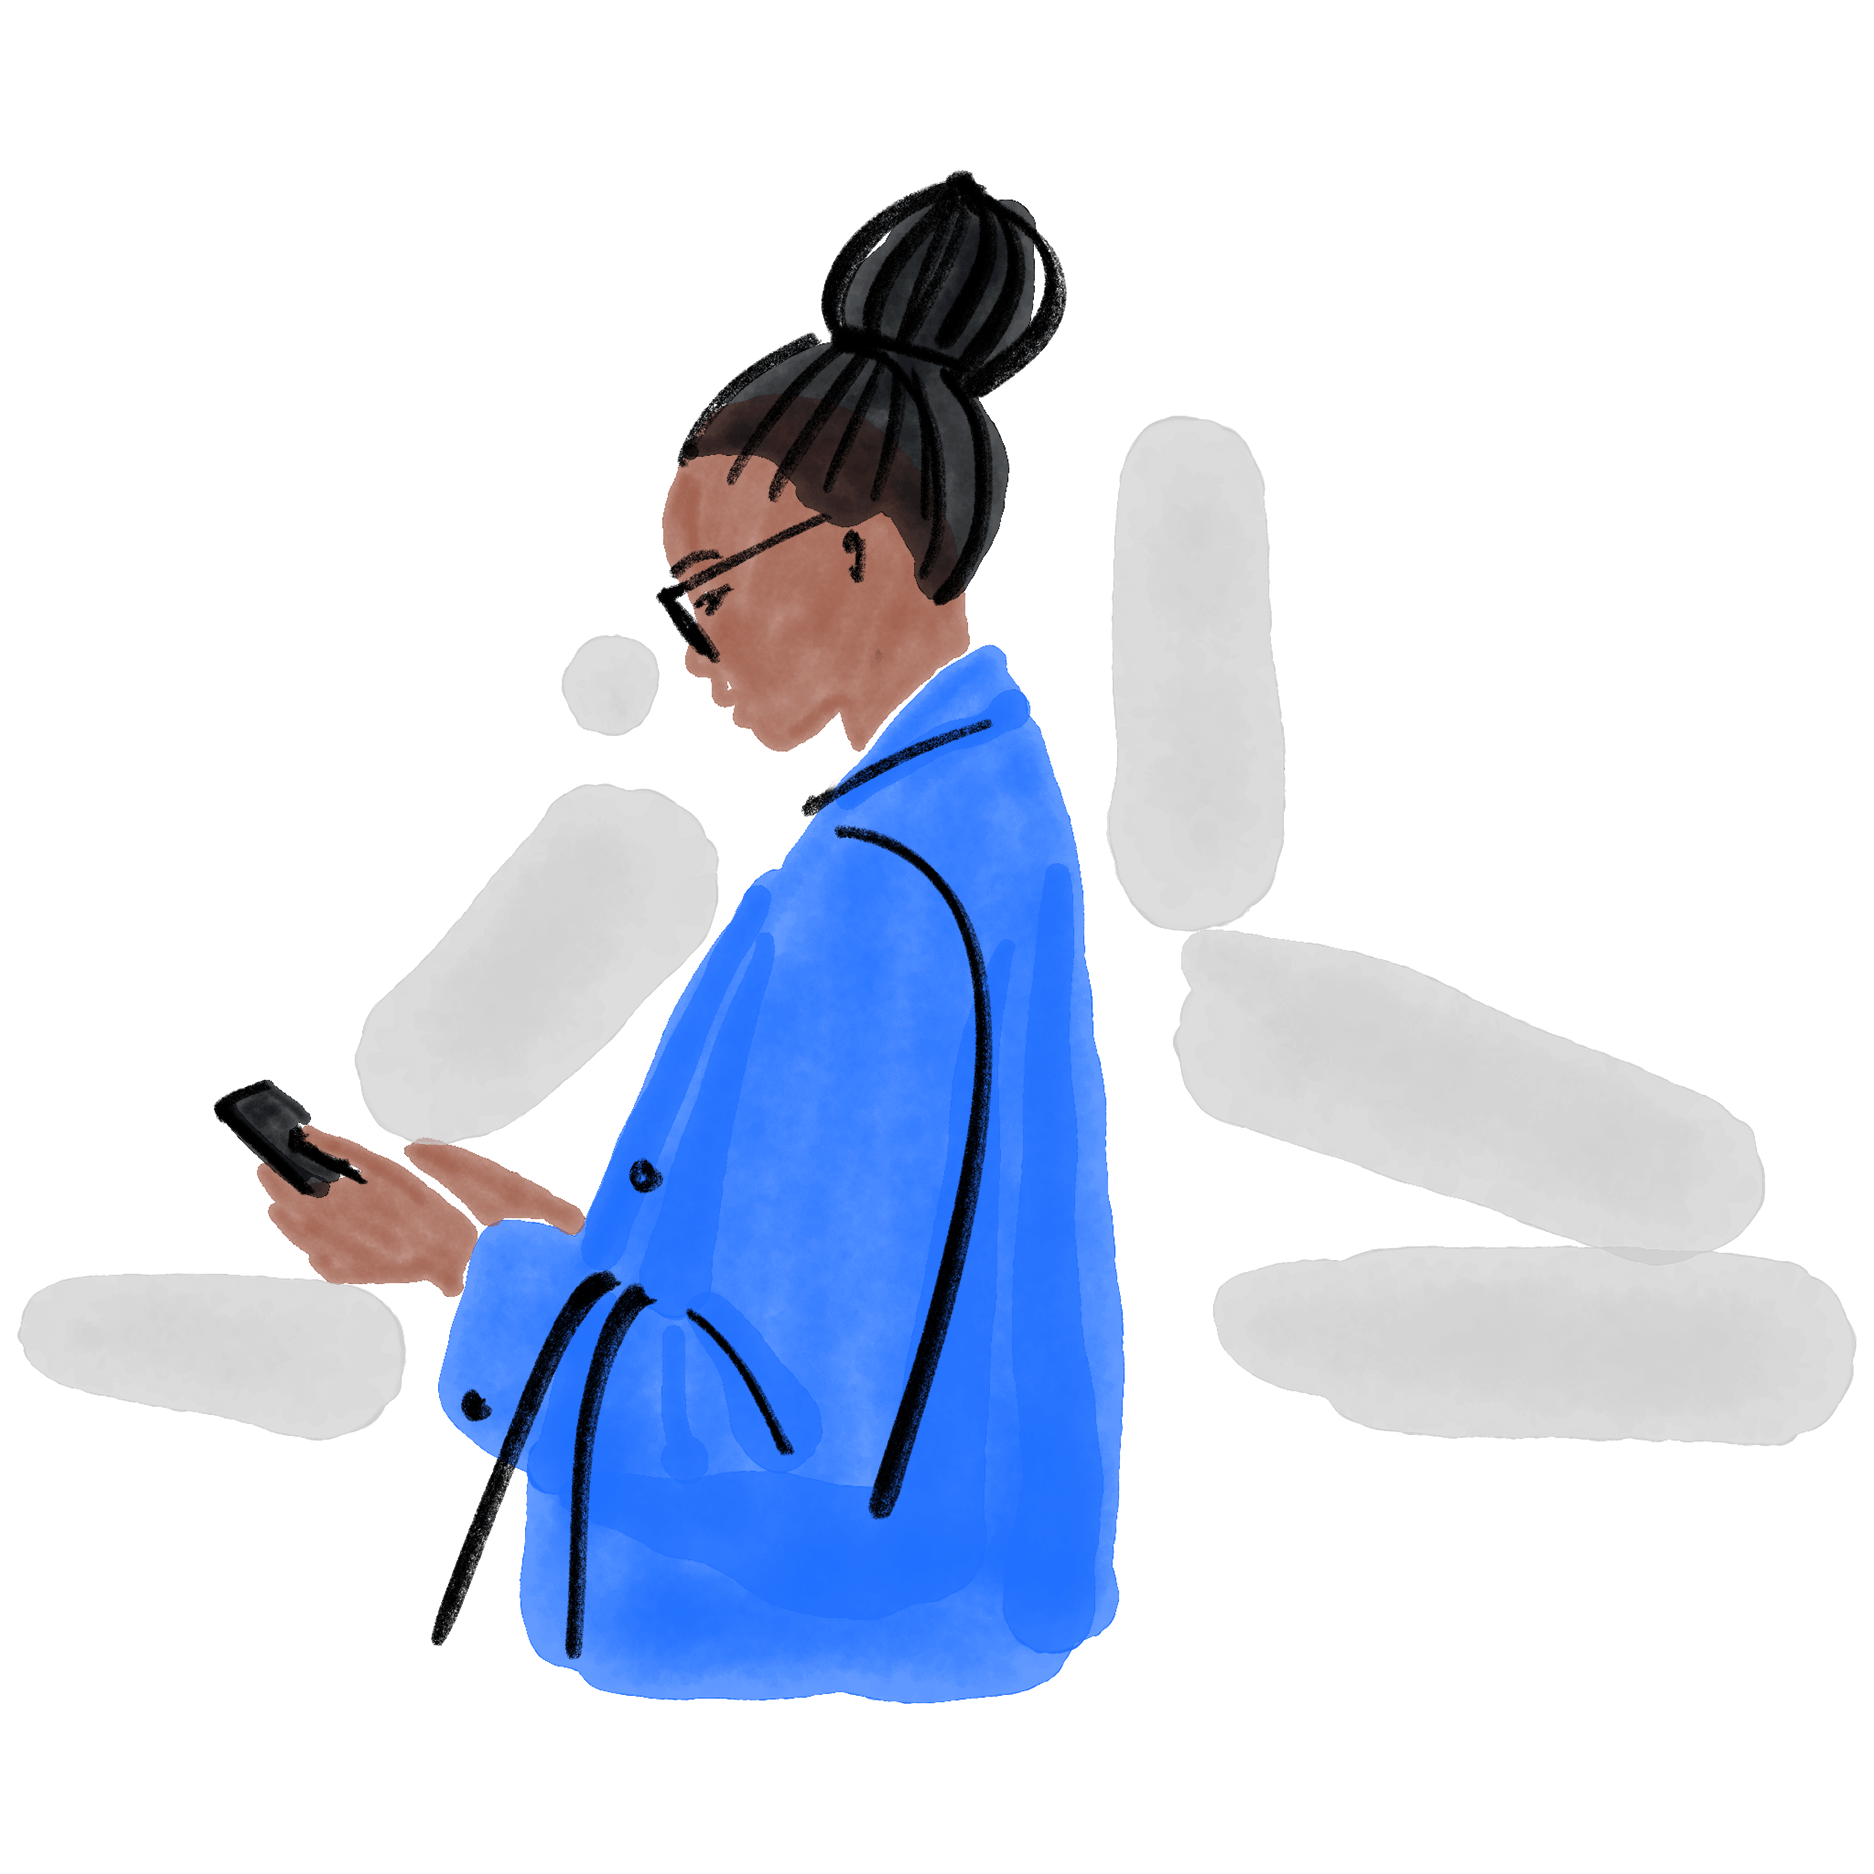 Illustration of a woman holding and interacting with a phone